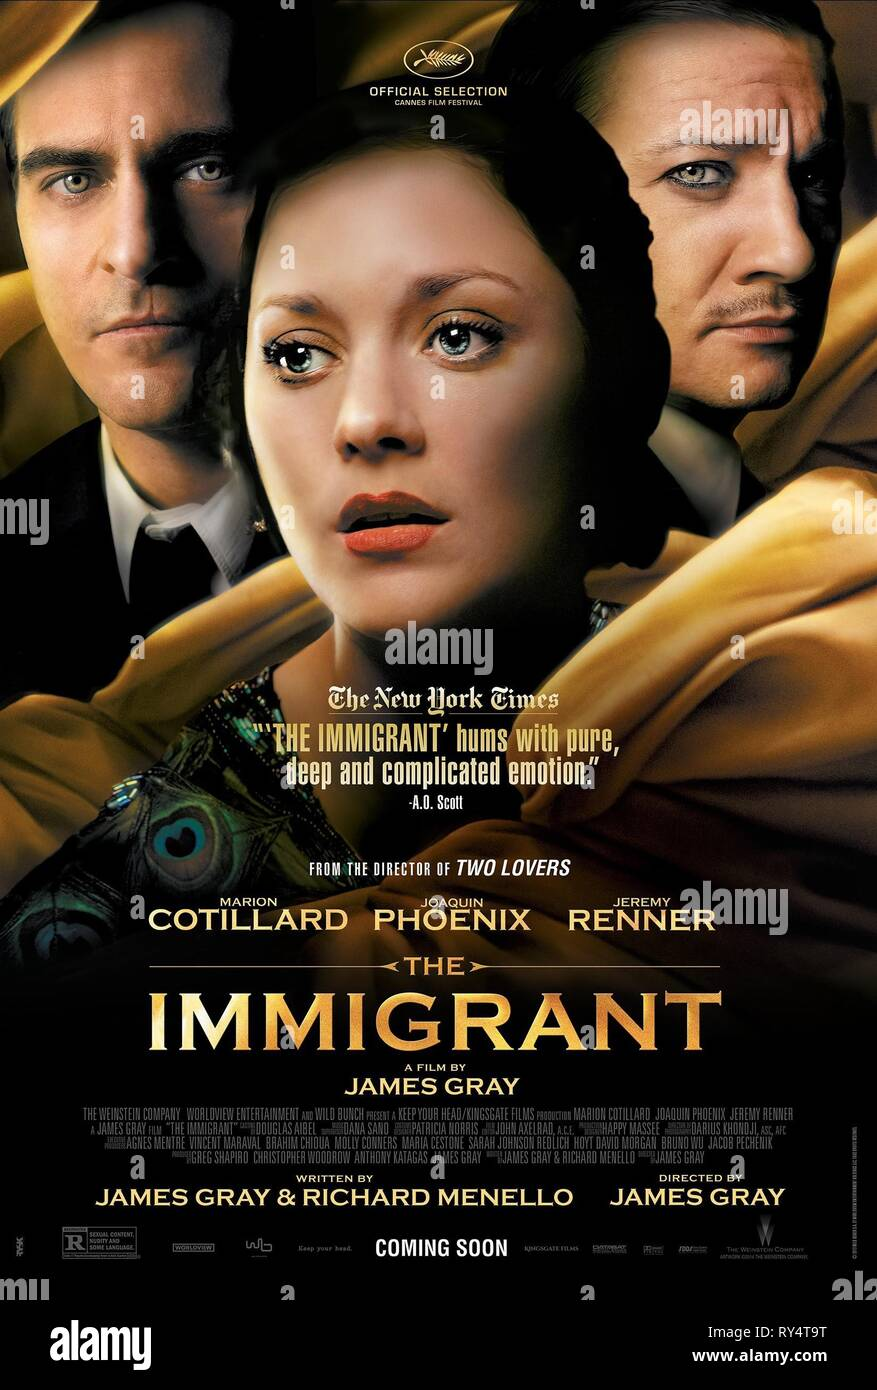 JOAQUIN PHOENIX, MARION COTILLARD,JEREMY RENNER POSTER, THE IMMIGRANT, 2013 - Stock Image